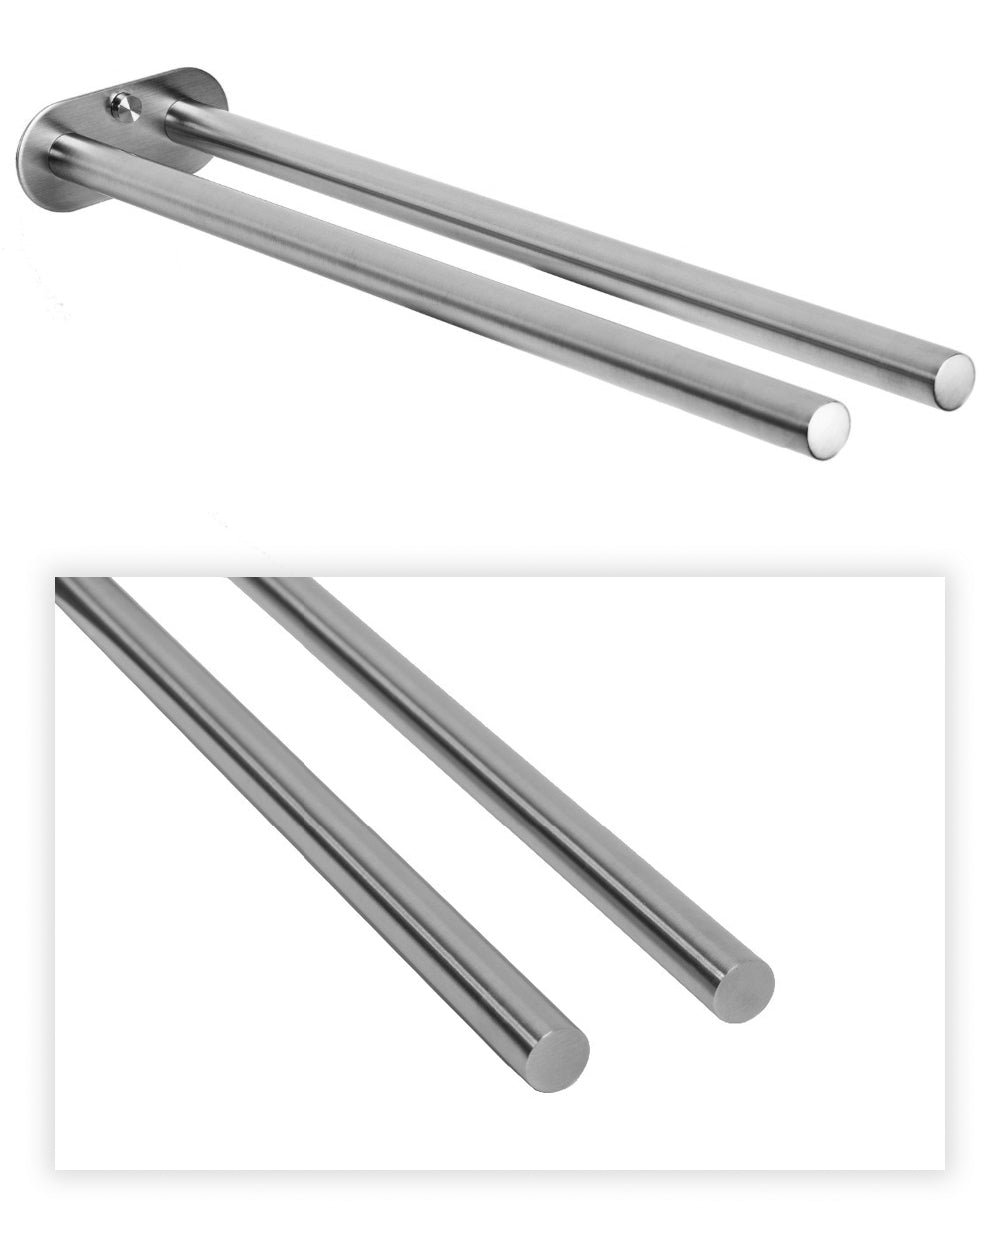 Stylish Twin Rail Bathroom Towel Holder High Grade Brushed Stainless Steel Fixed 40cm Double Rods For Hanging Towels Modern Design Ideal For Washroom Or Kitchen